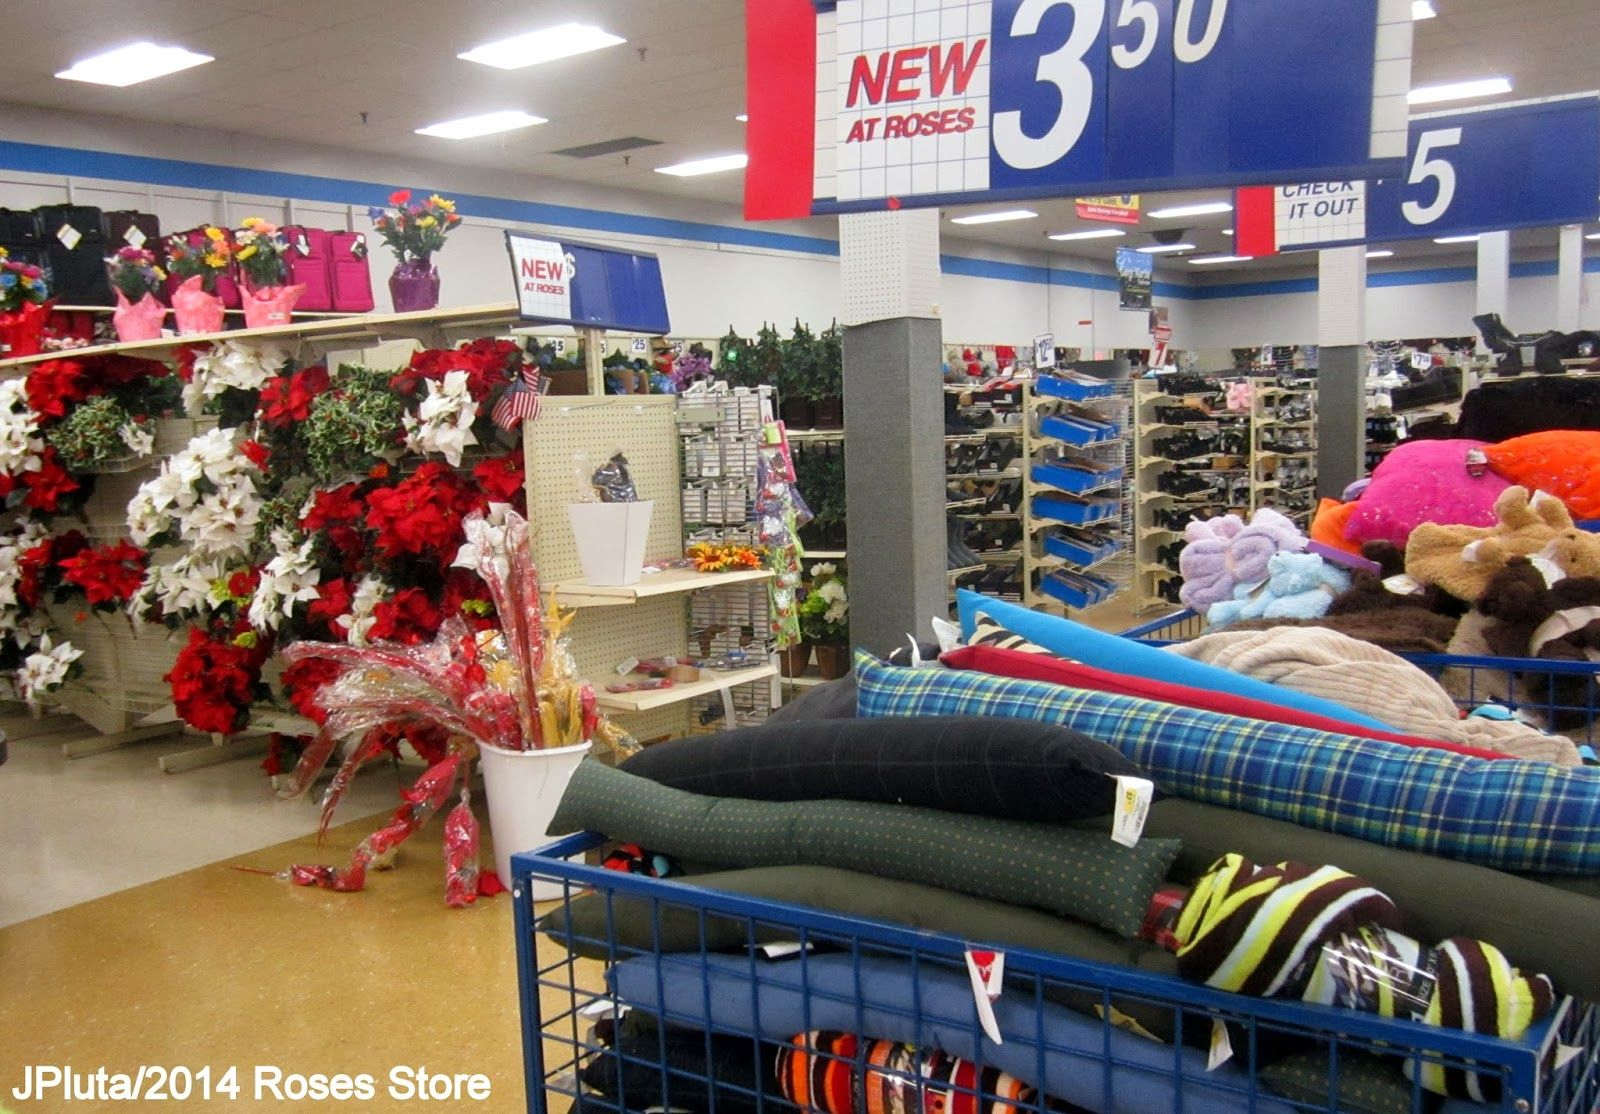 Pin By Roses Discount Store On Roses Stores Today Roses Store Rose